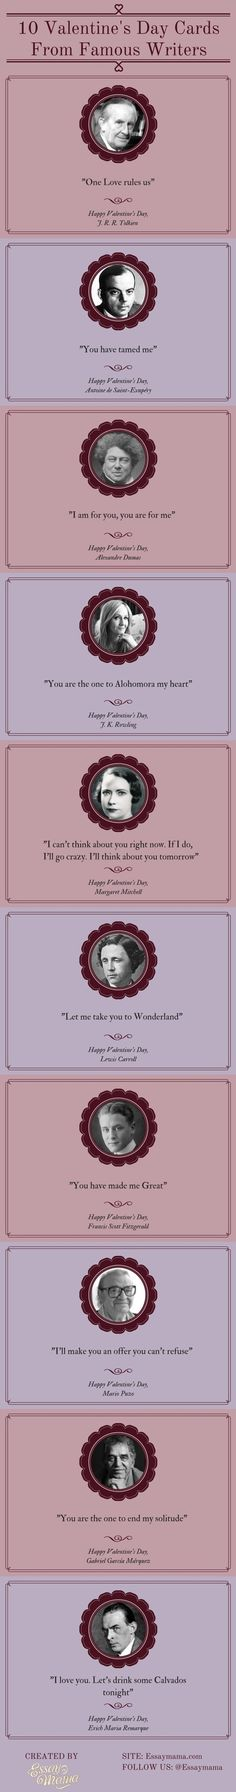 10 Valentine's Day Cards From Famous Writers #infographic #ValentinesDay